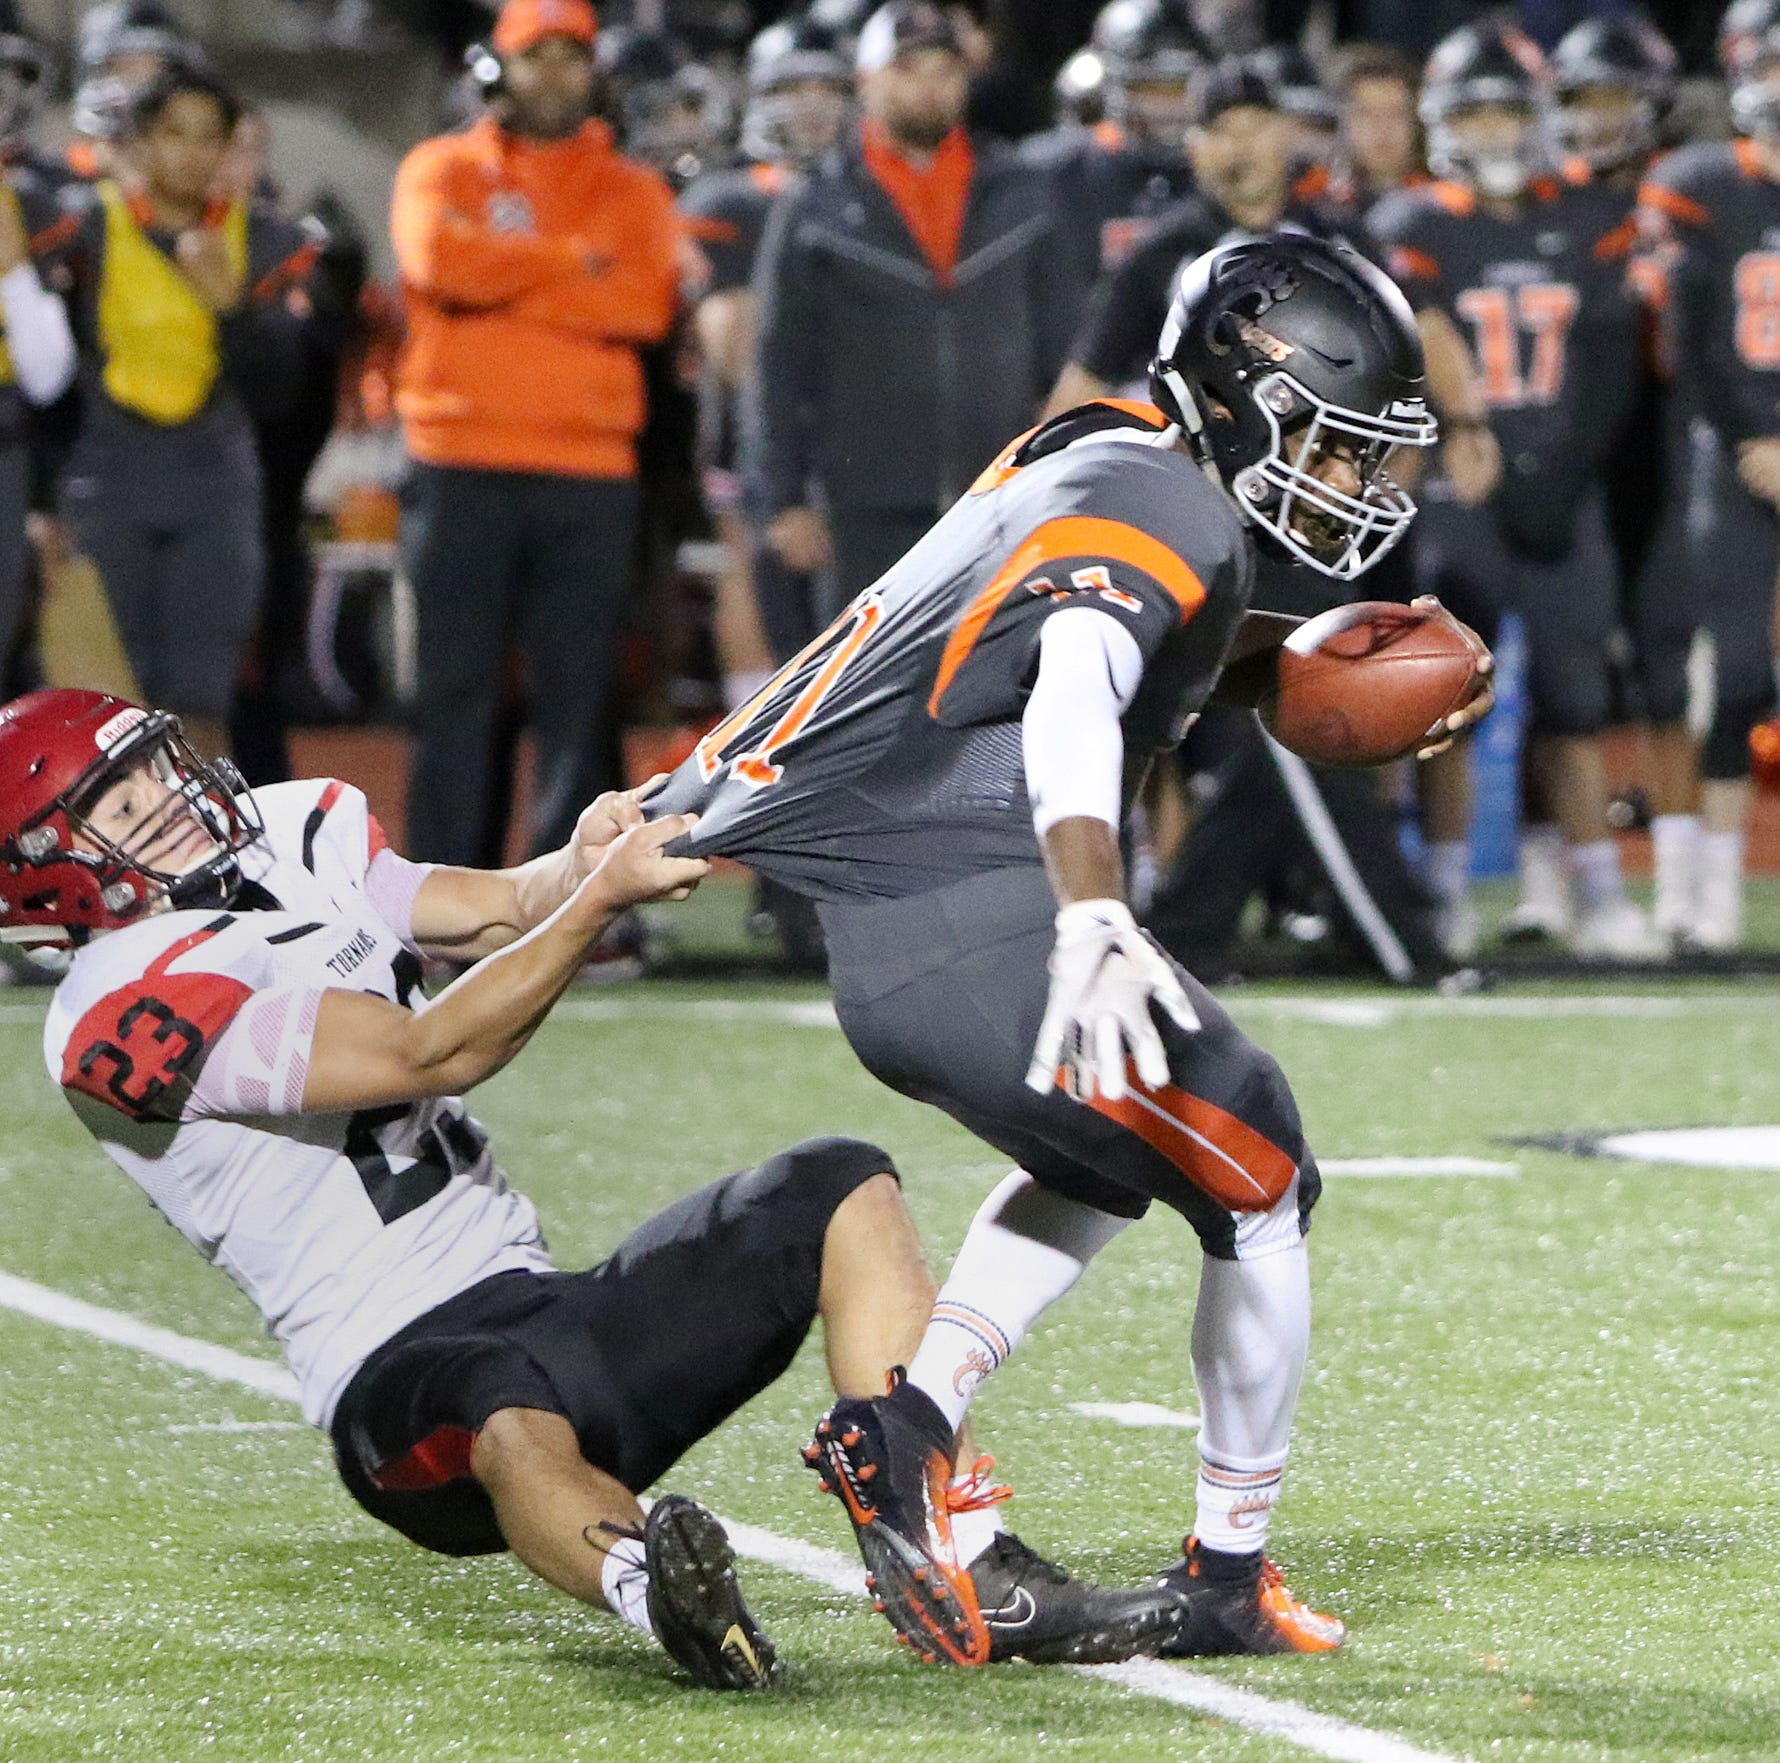 McGee runs for two TDs, throws for two more in Central Kitsap's win